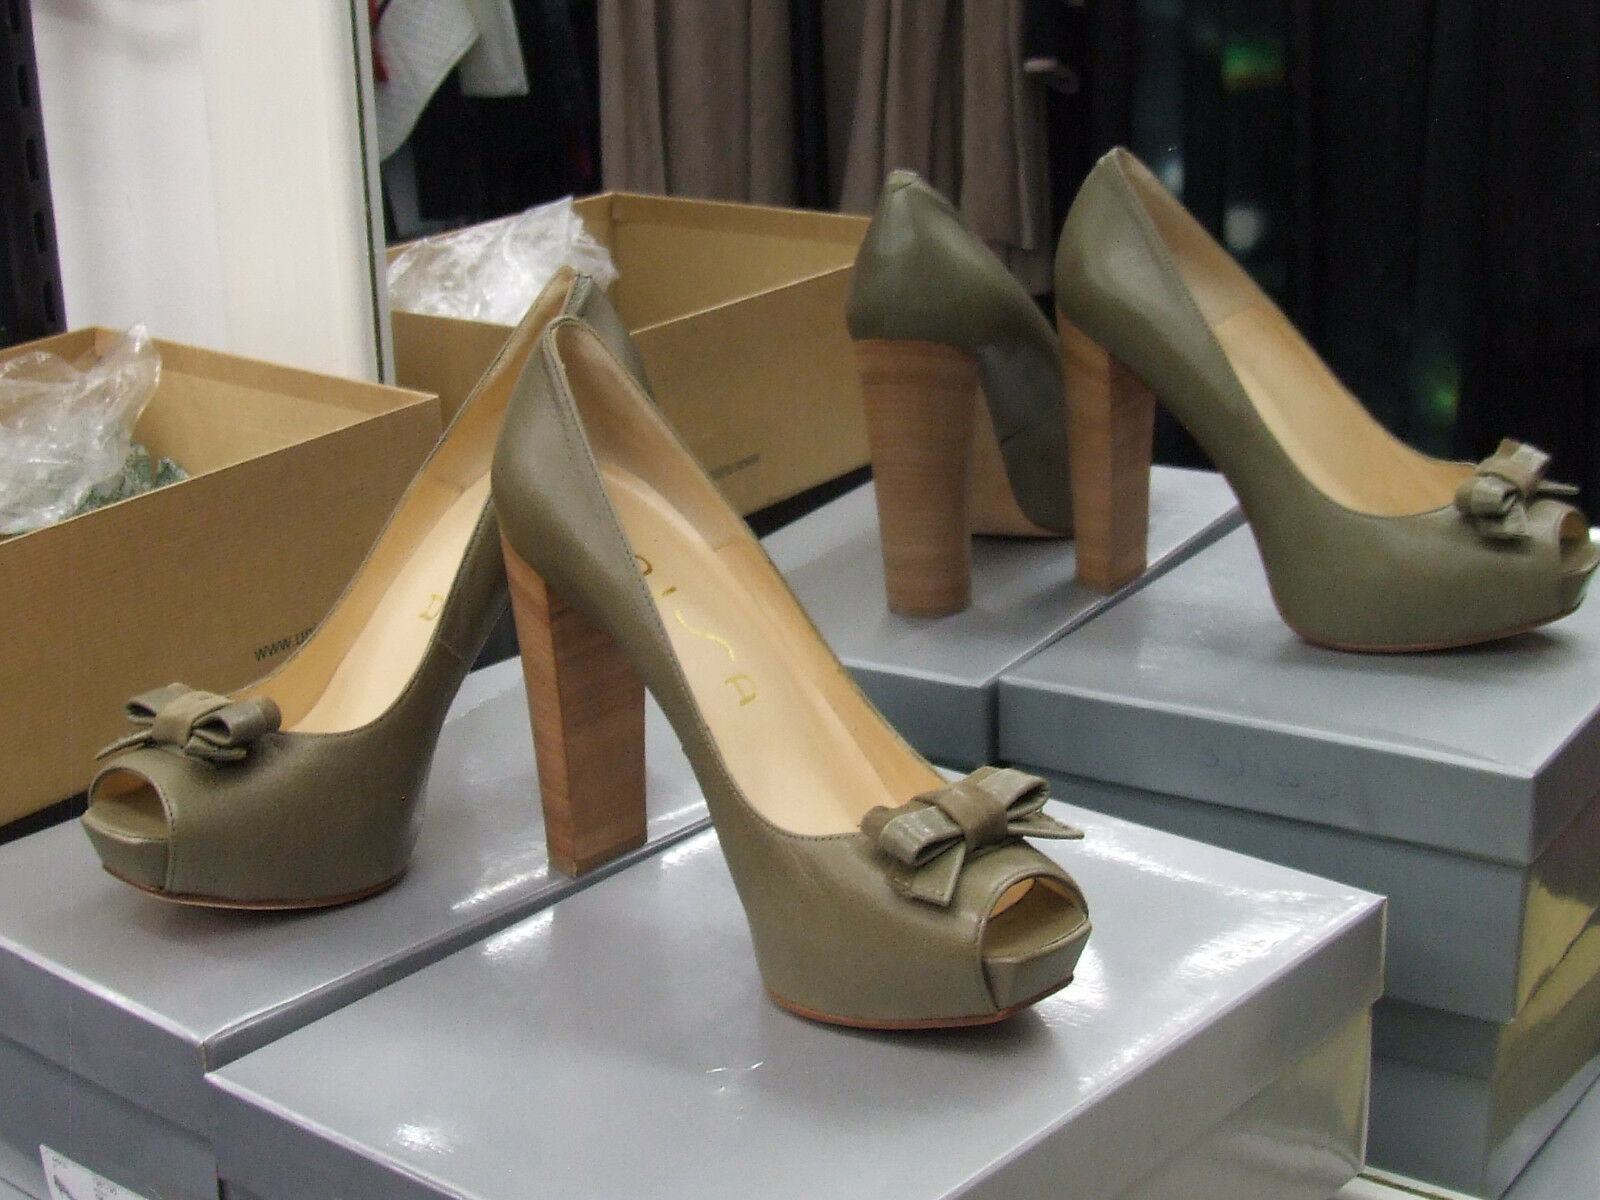 BNIB UK 7.5 Divine Green Very High Heel Moss Green Divine Peep Toe & Bow Leather Shoes EU 41 836357